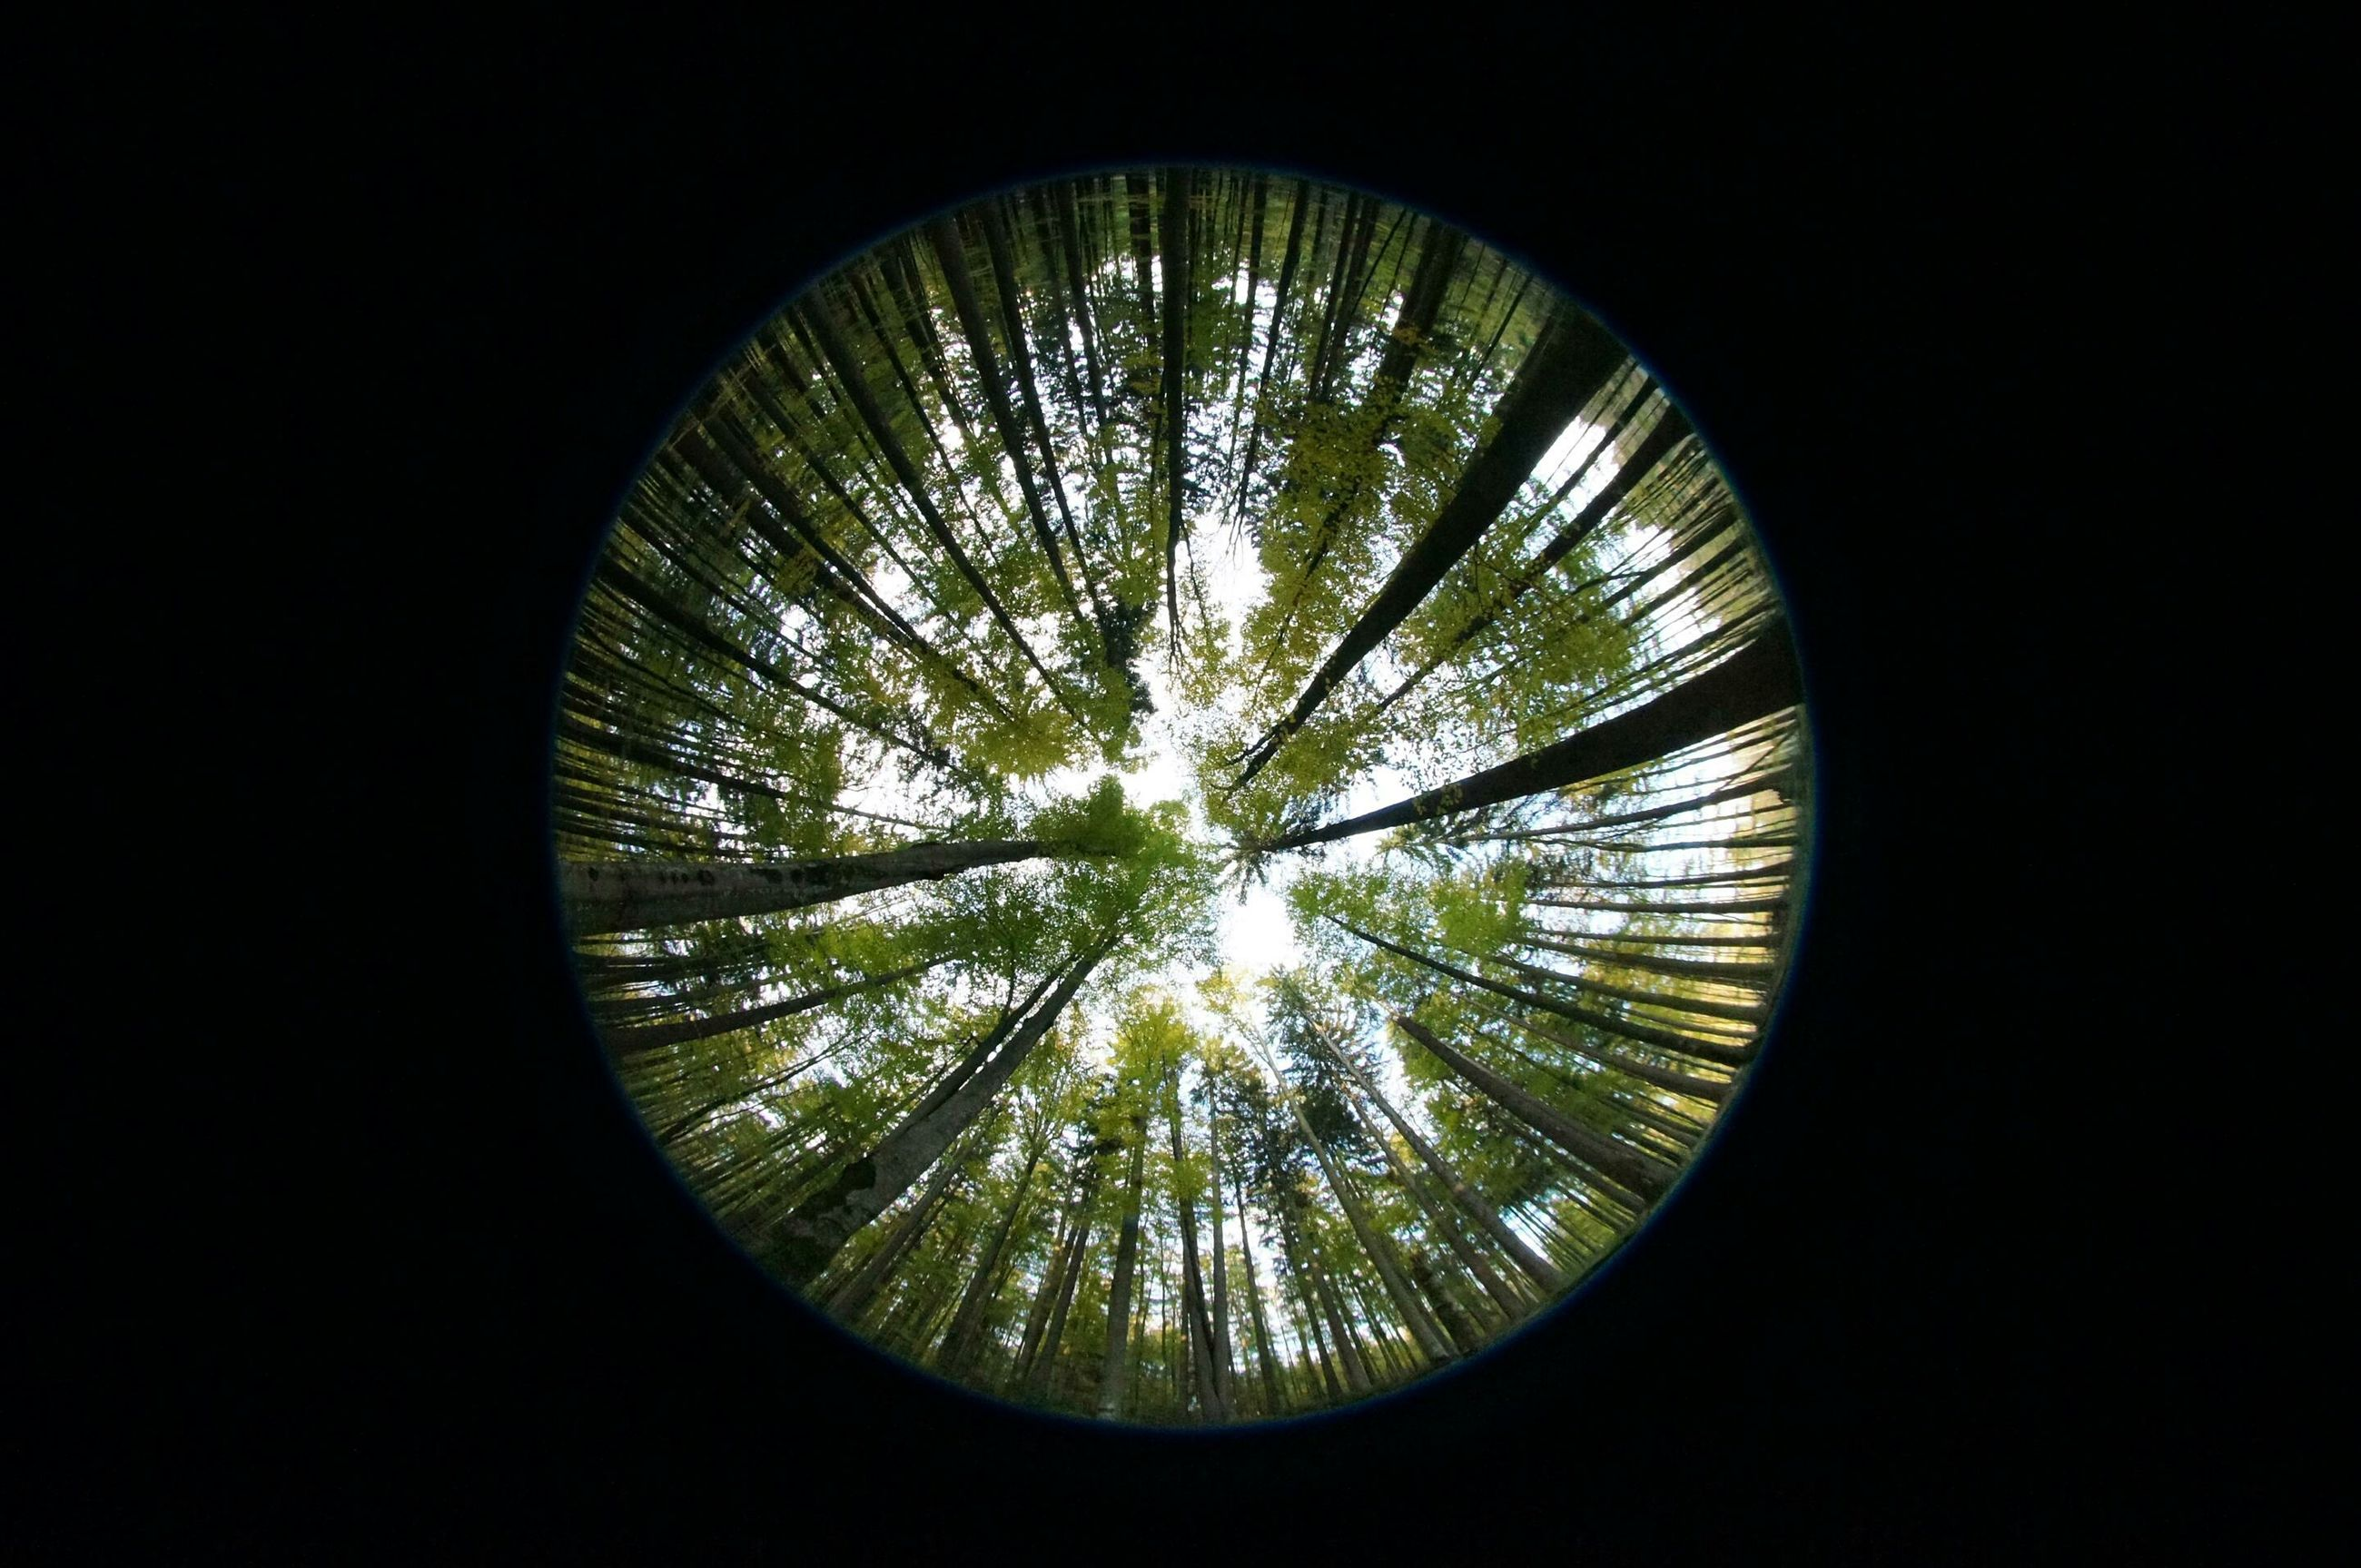 circle, indoors, low angle view, geometric shape, tree, directly below, dark, glass - material, pattern, shape, window, no people, silhouette, sky, round, design, built structure, skylight, glowing, illuminated